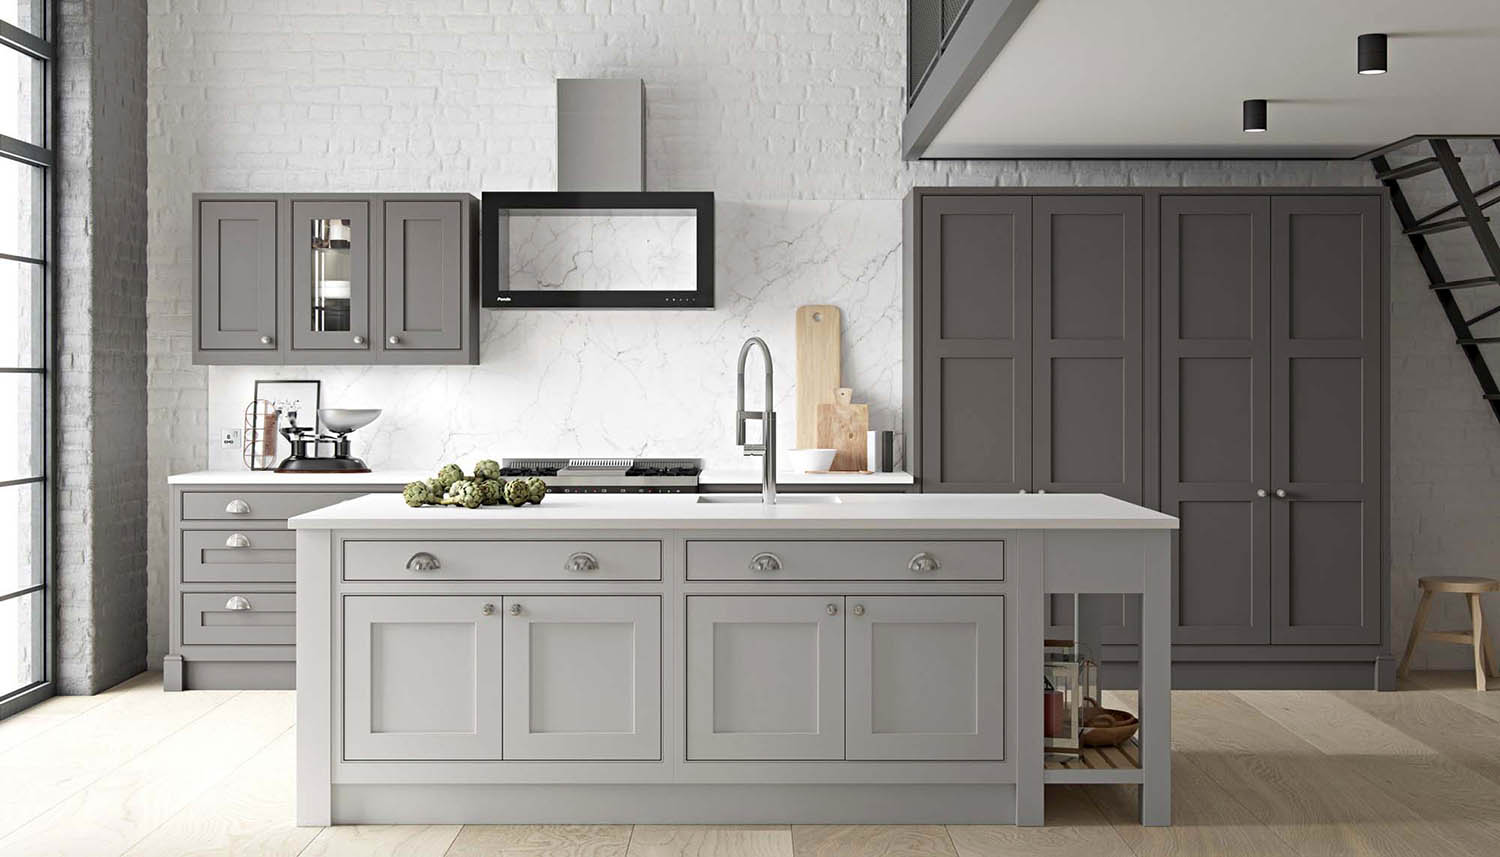 Gray cream kitchen cabinets with a modern design. White stone countertops. Solid slab marble backsplash with white brick veneer.